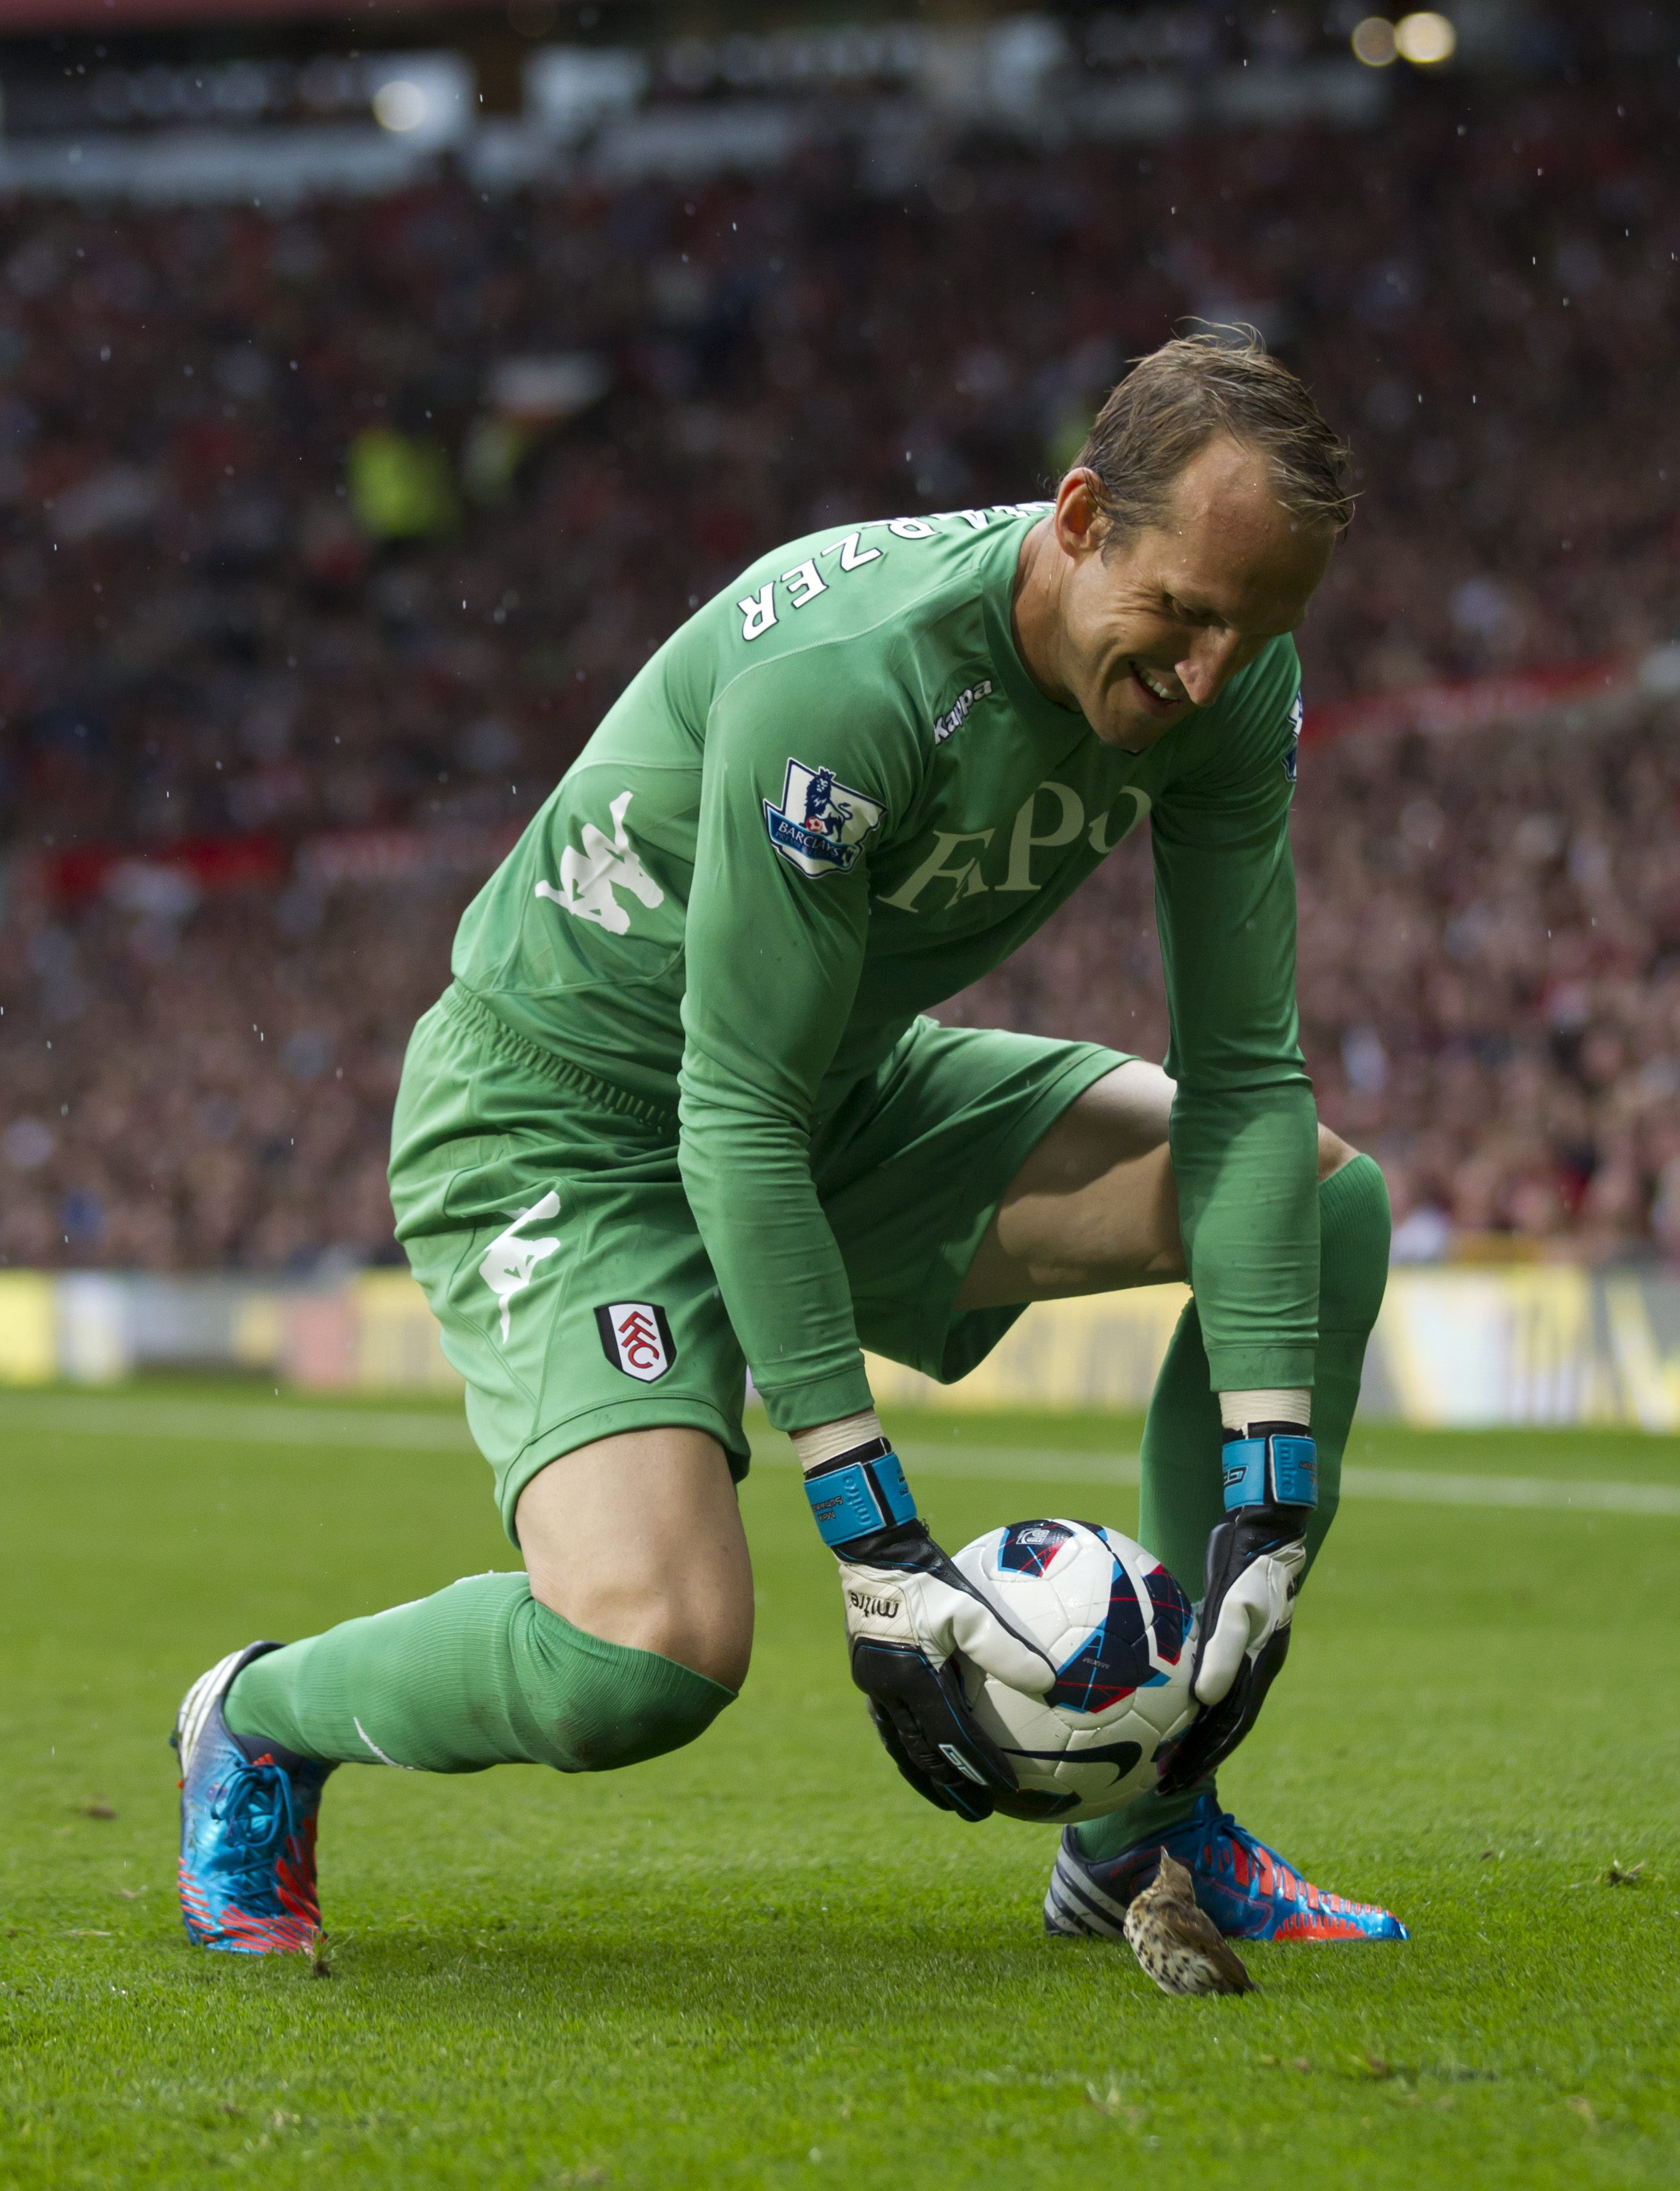 Fulham's goalkeeper Mark Schwarzer moves a bird from the pitch as his team lose 3-2 to Manchester United during their English Premier League soccer match at Old Trafford Stadium, Manchester, England, Saturday, Aug. 25, 2012. (AP Photo/Jon Super)